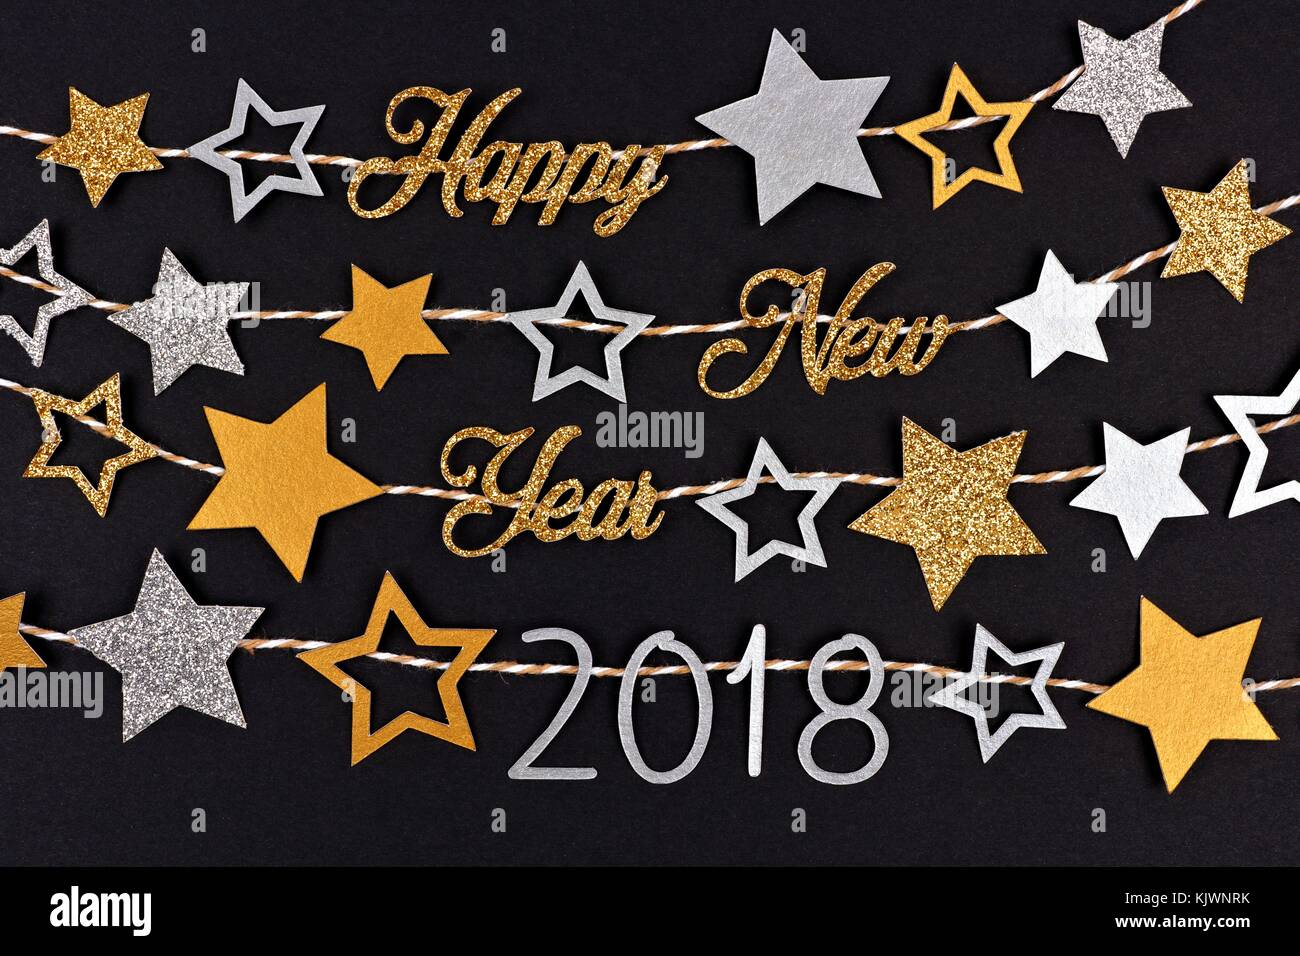 happy new year 2018 glitter text banner with strings of gold and silver stars against a black paper background